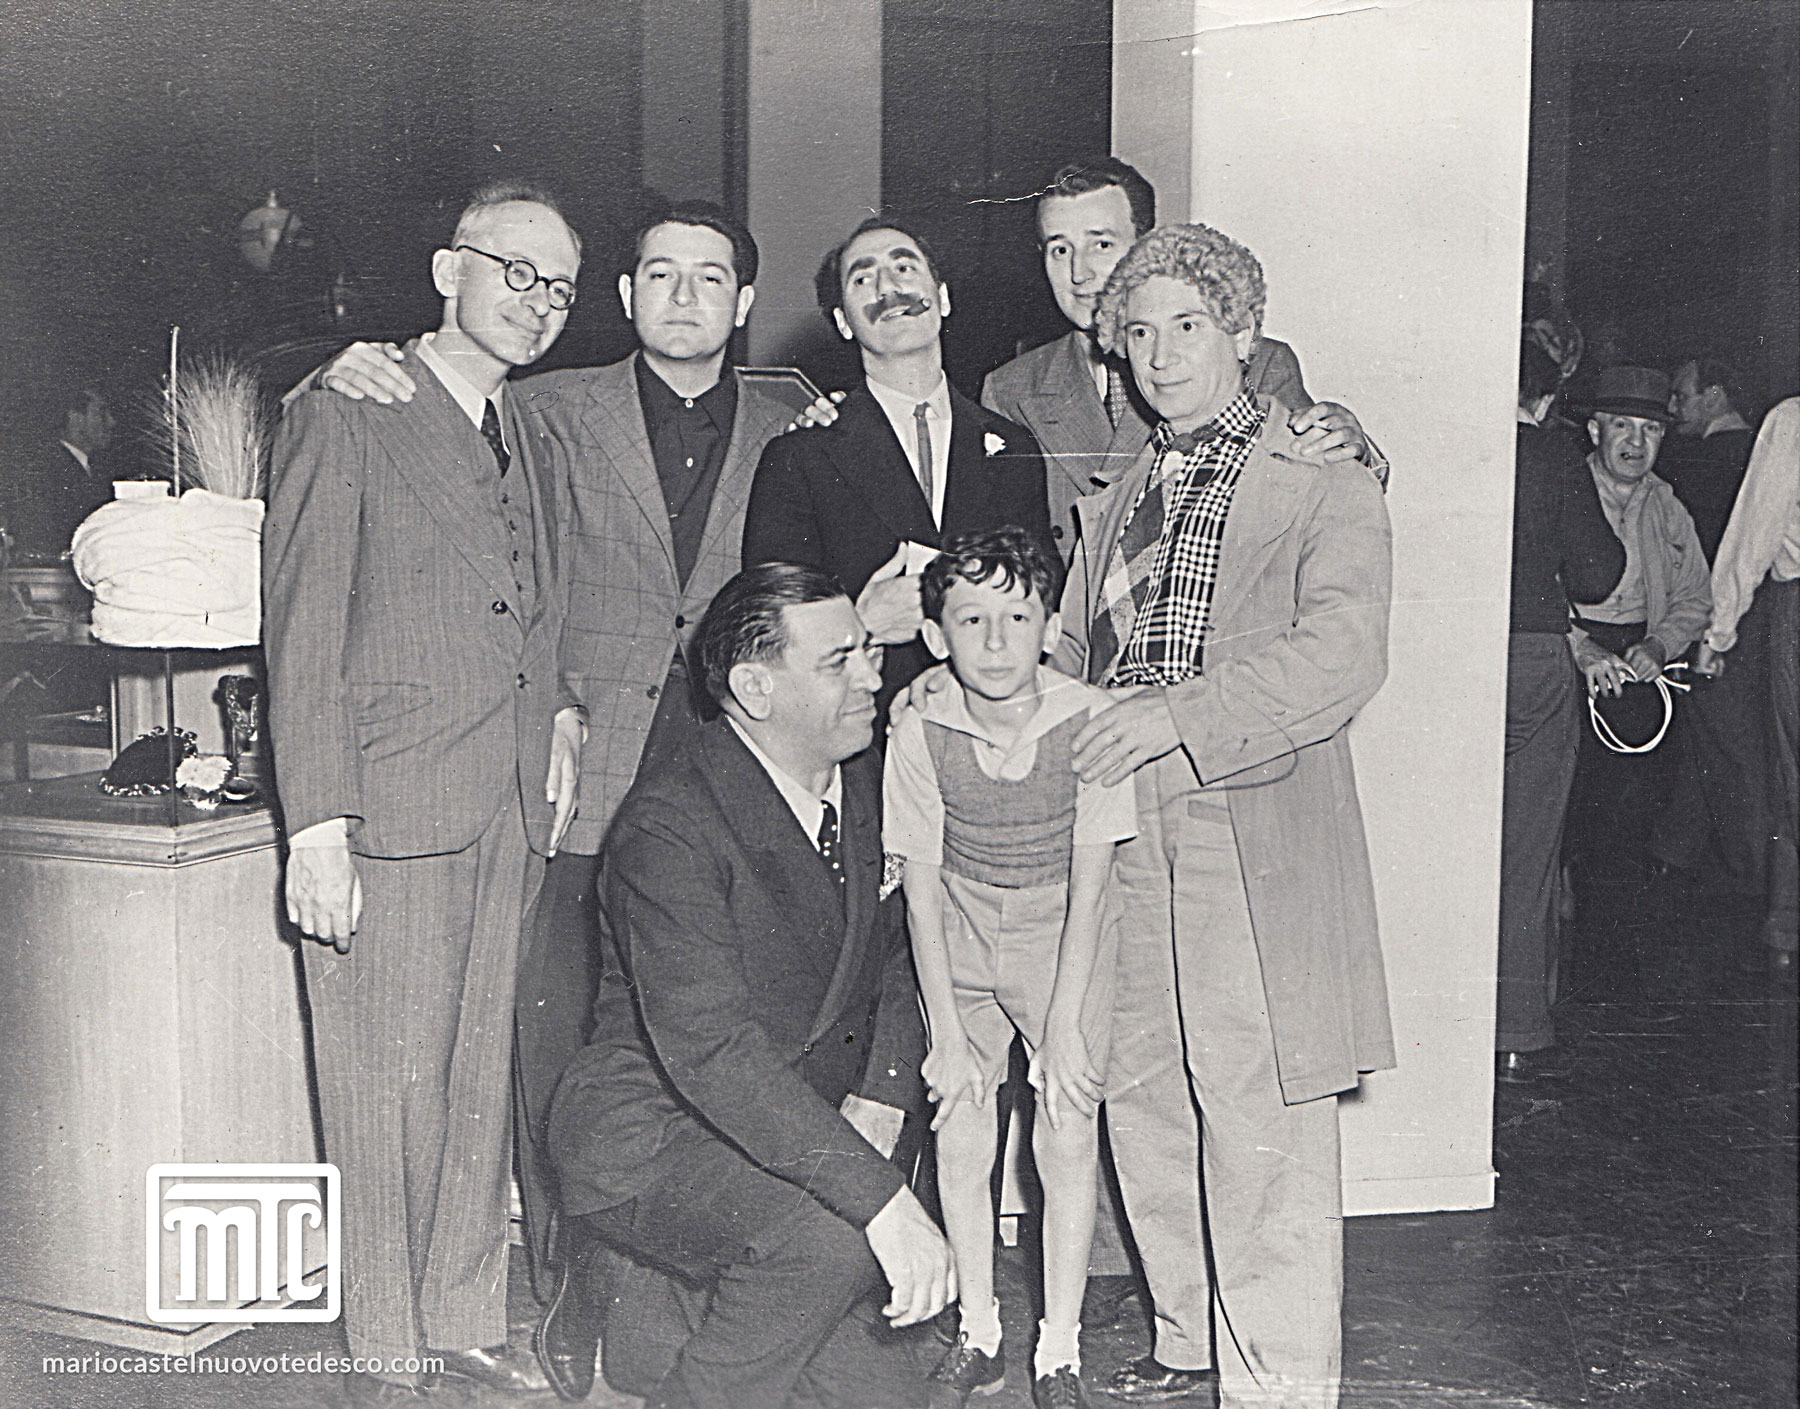 MCT at MGM with the Marx Brothers and his son Lorenzo, 1941